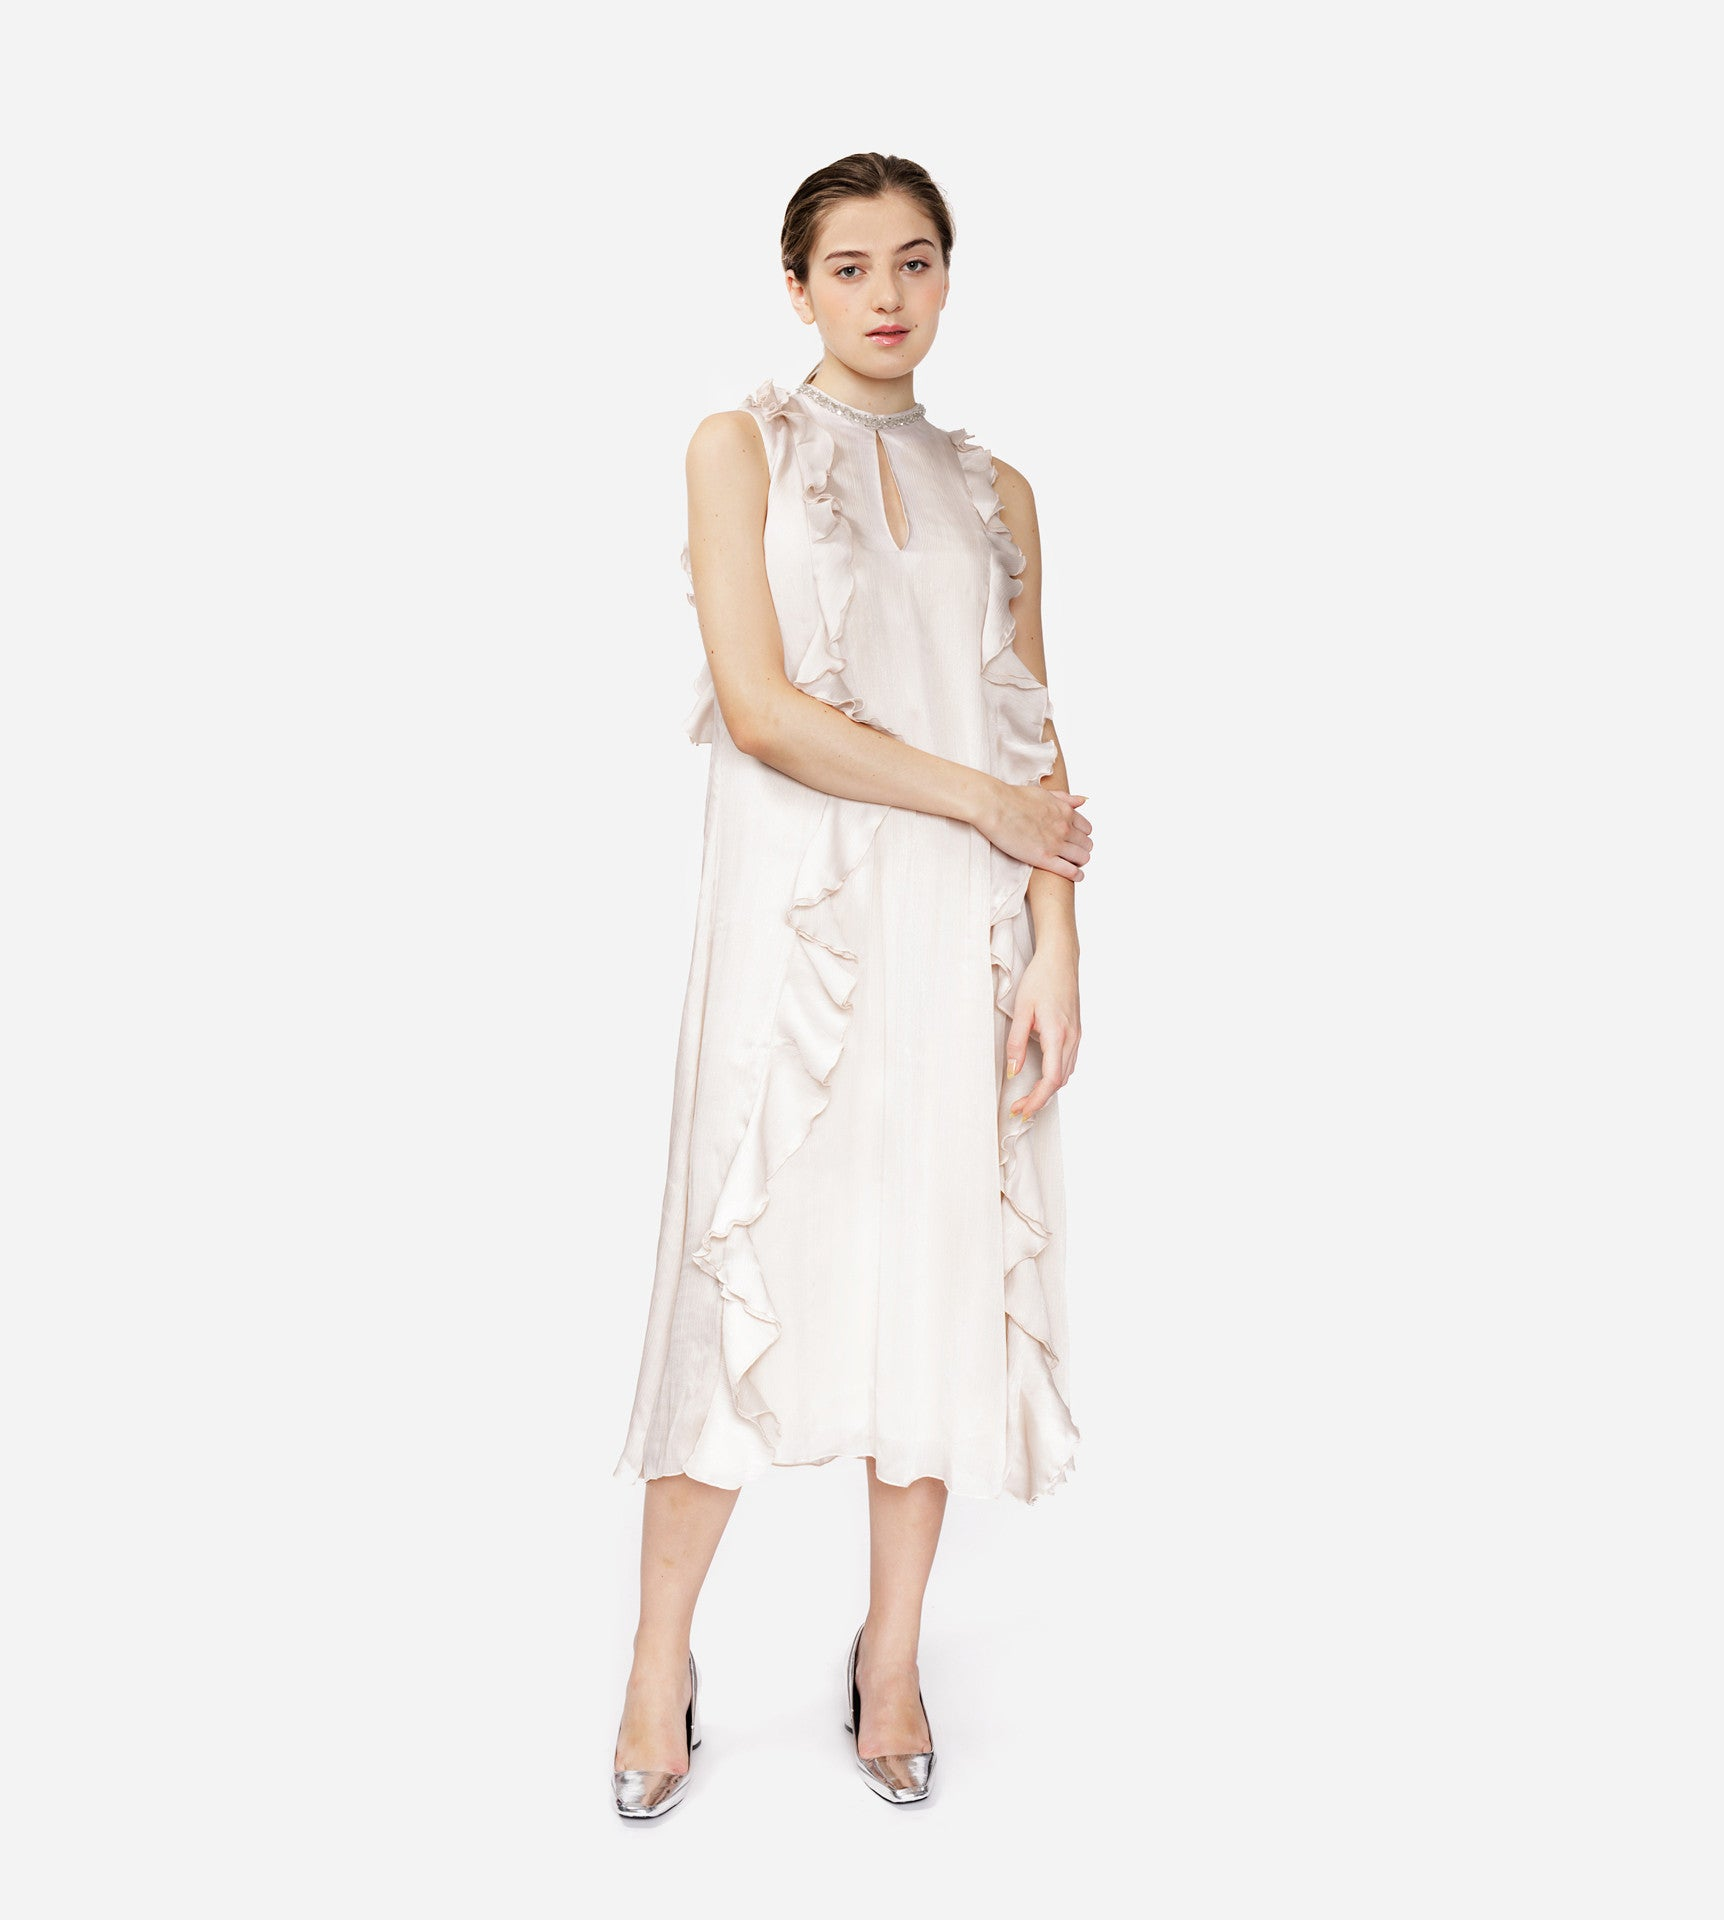 Straight-Cut Frilled Dress With Pearl Ornaments